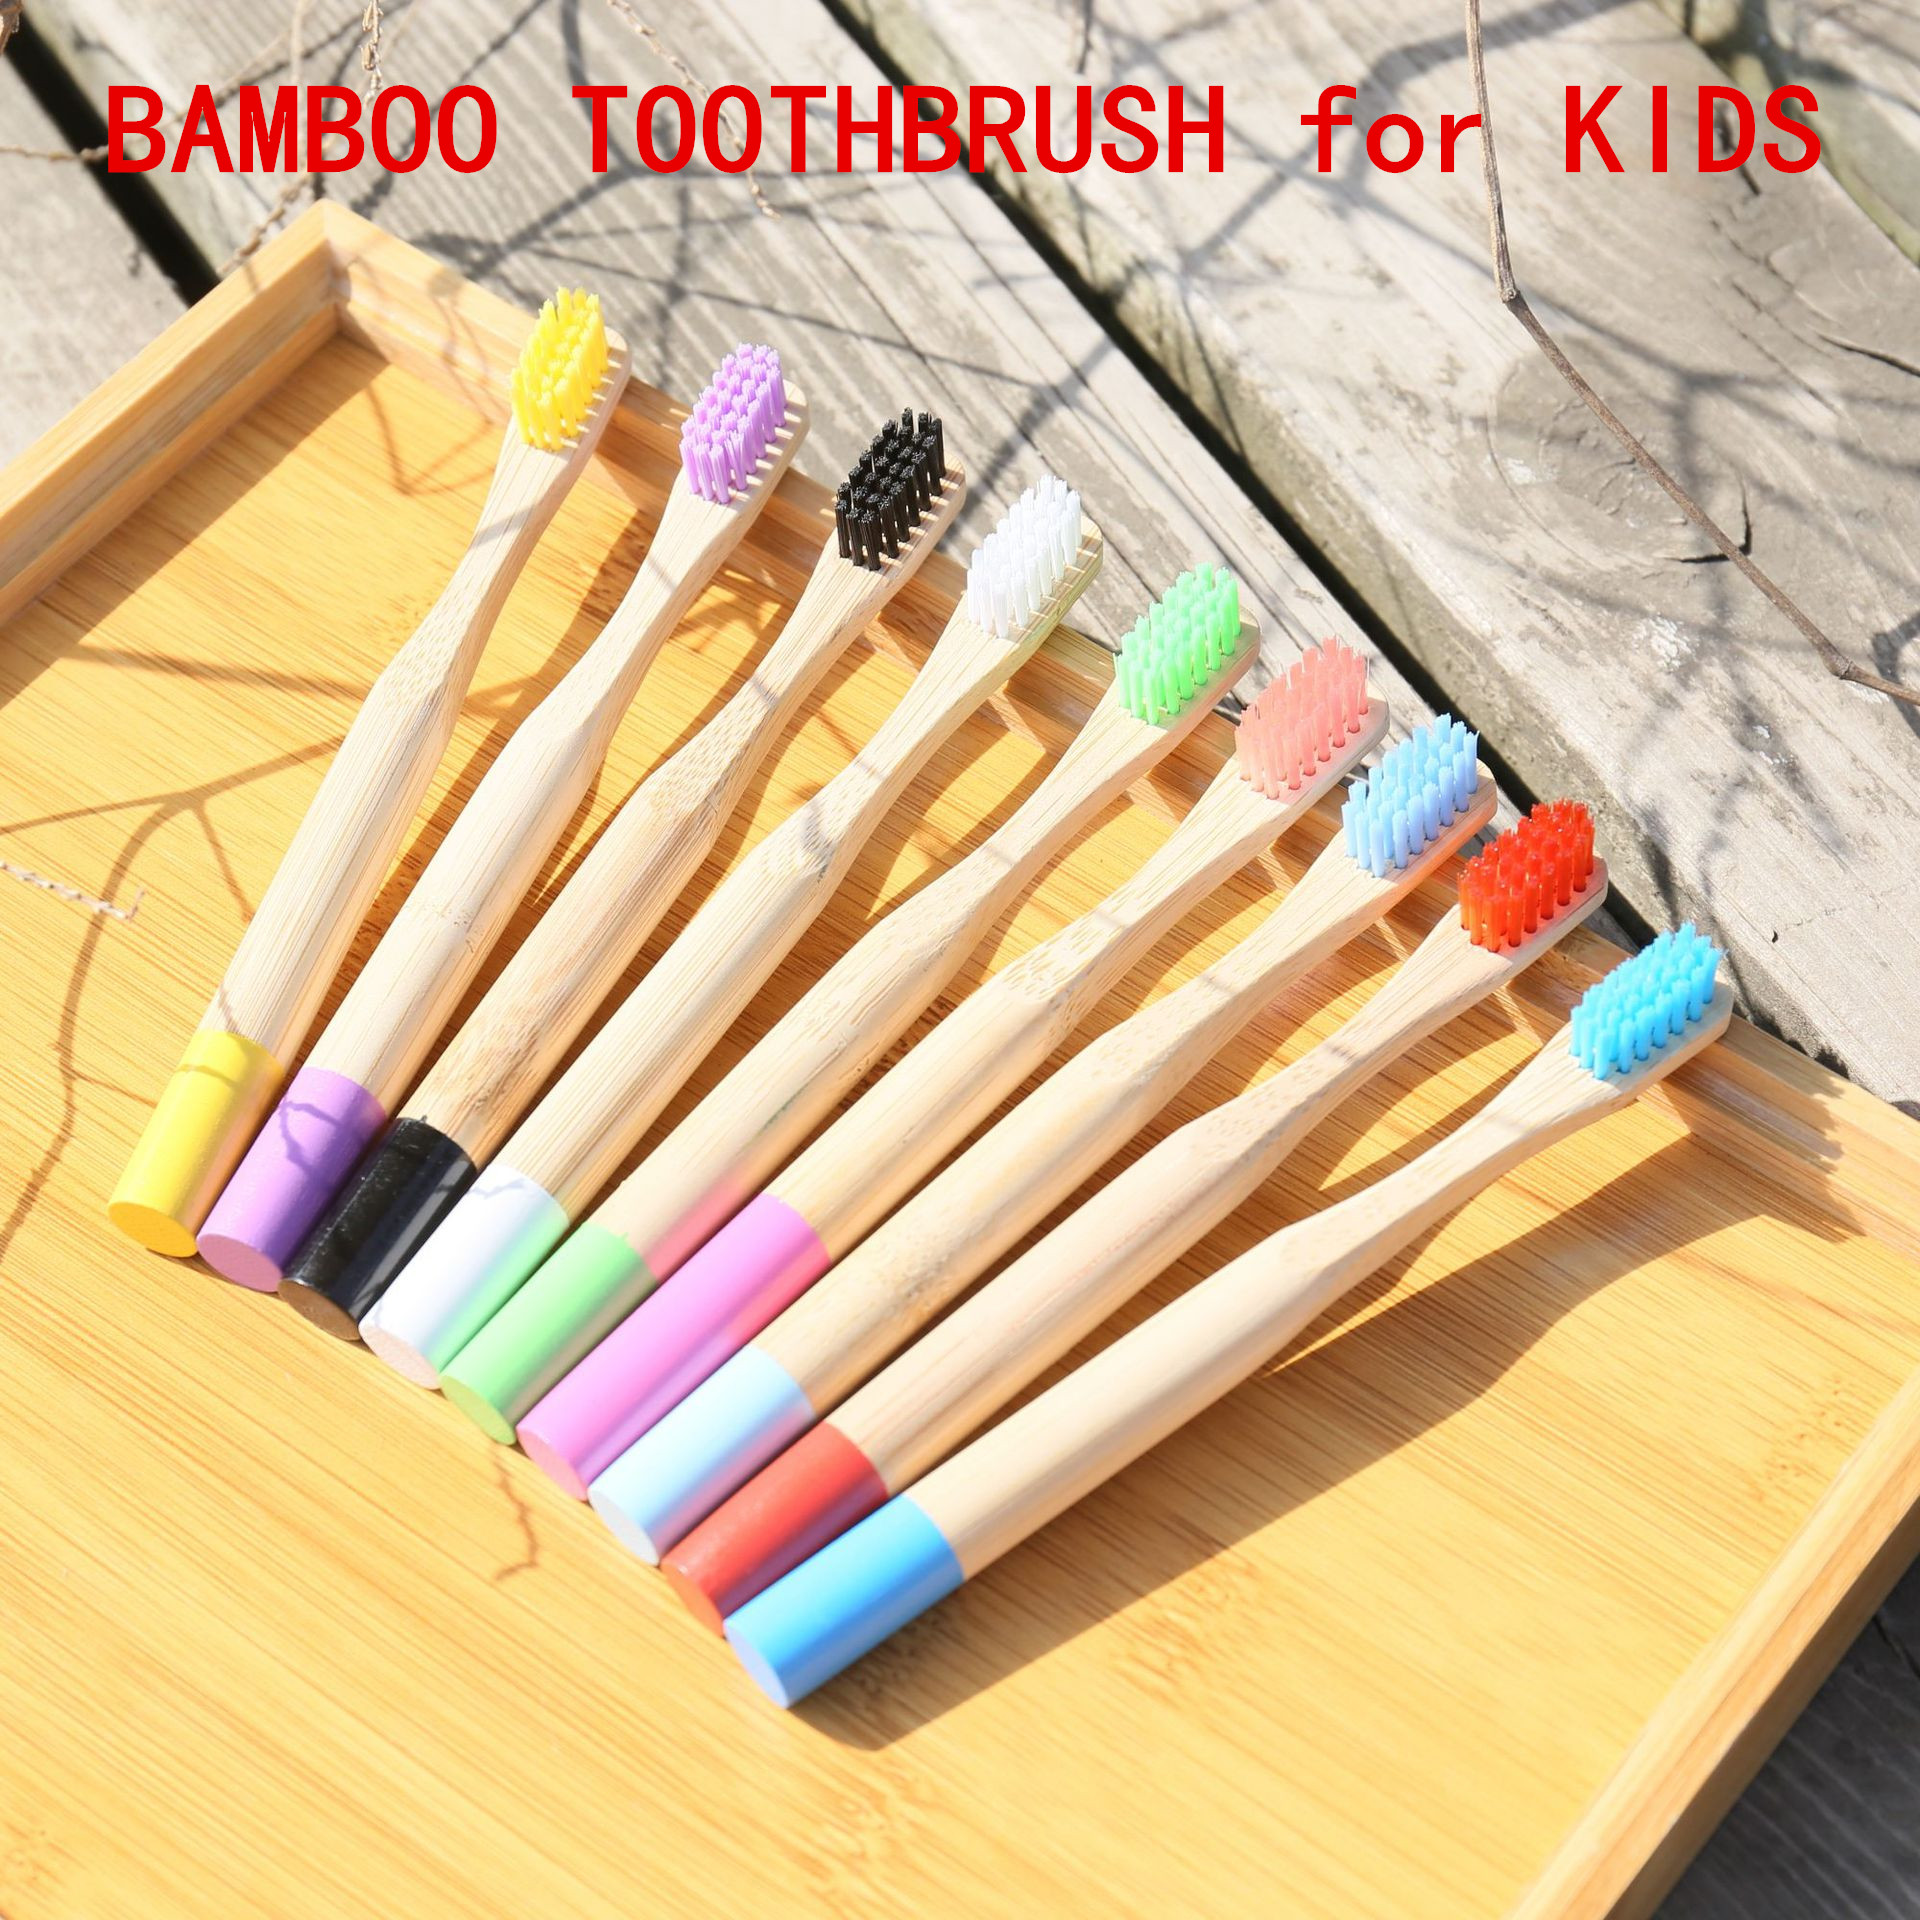 20PC Kids Bamboo Toothbrushes Soft Bristles Eco Natural Biodegradable Oral Care Toothbrush Mix Colors Child Bamboo Toothbrush image